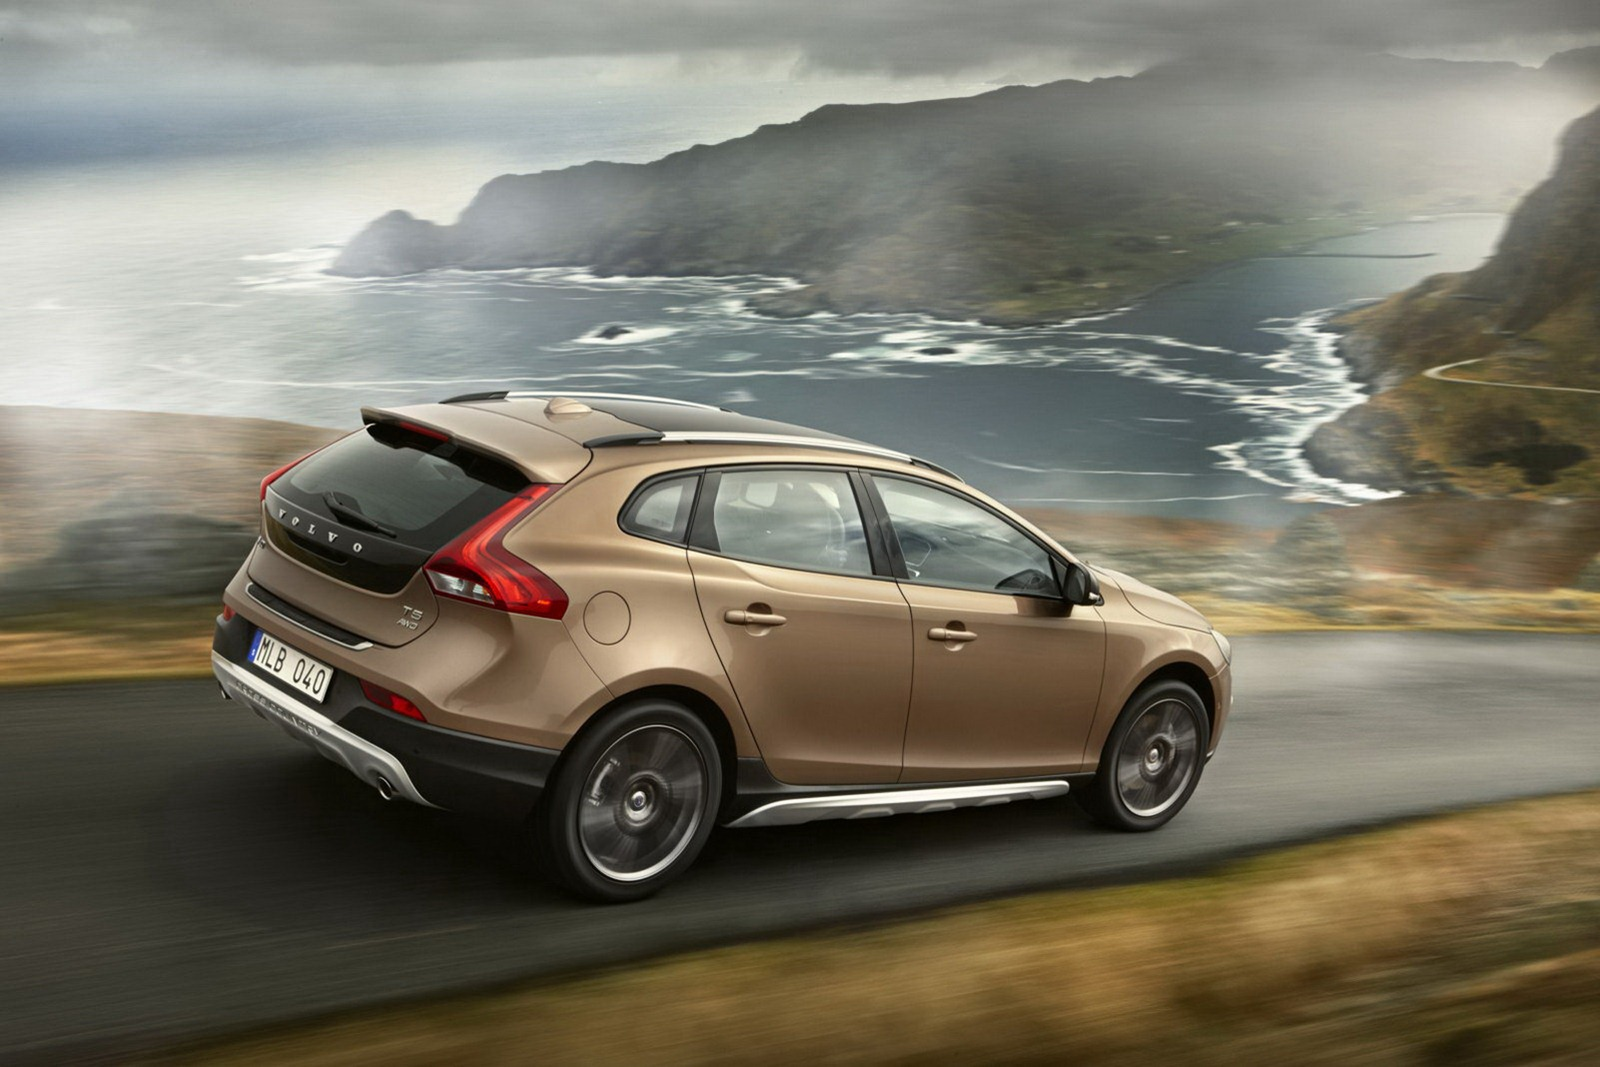 Volvo_V40_Cross_Country_Driving_2